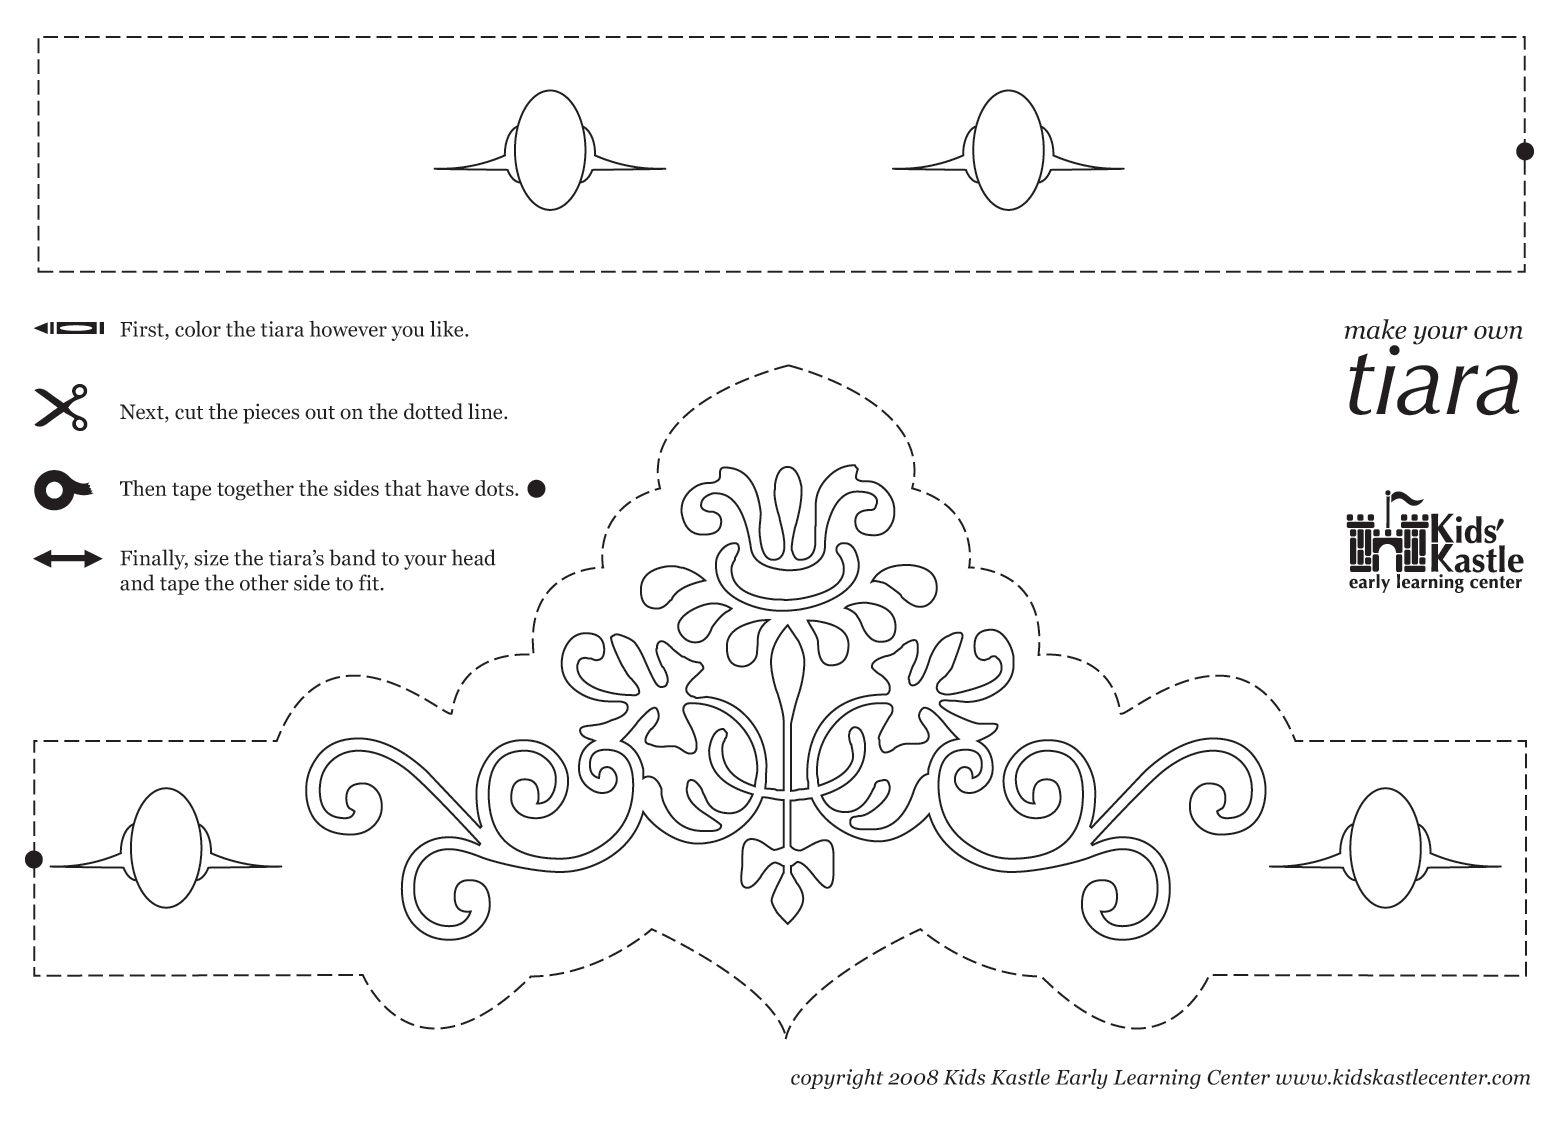 Princess Crown Pattern Printable Princess Tiara Templates Images